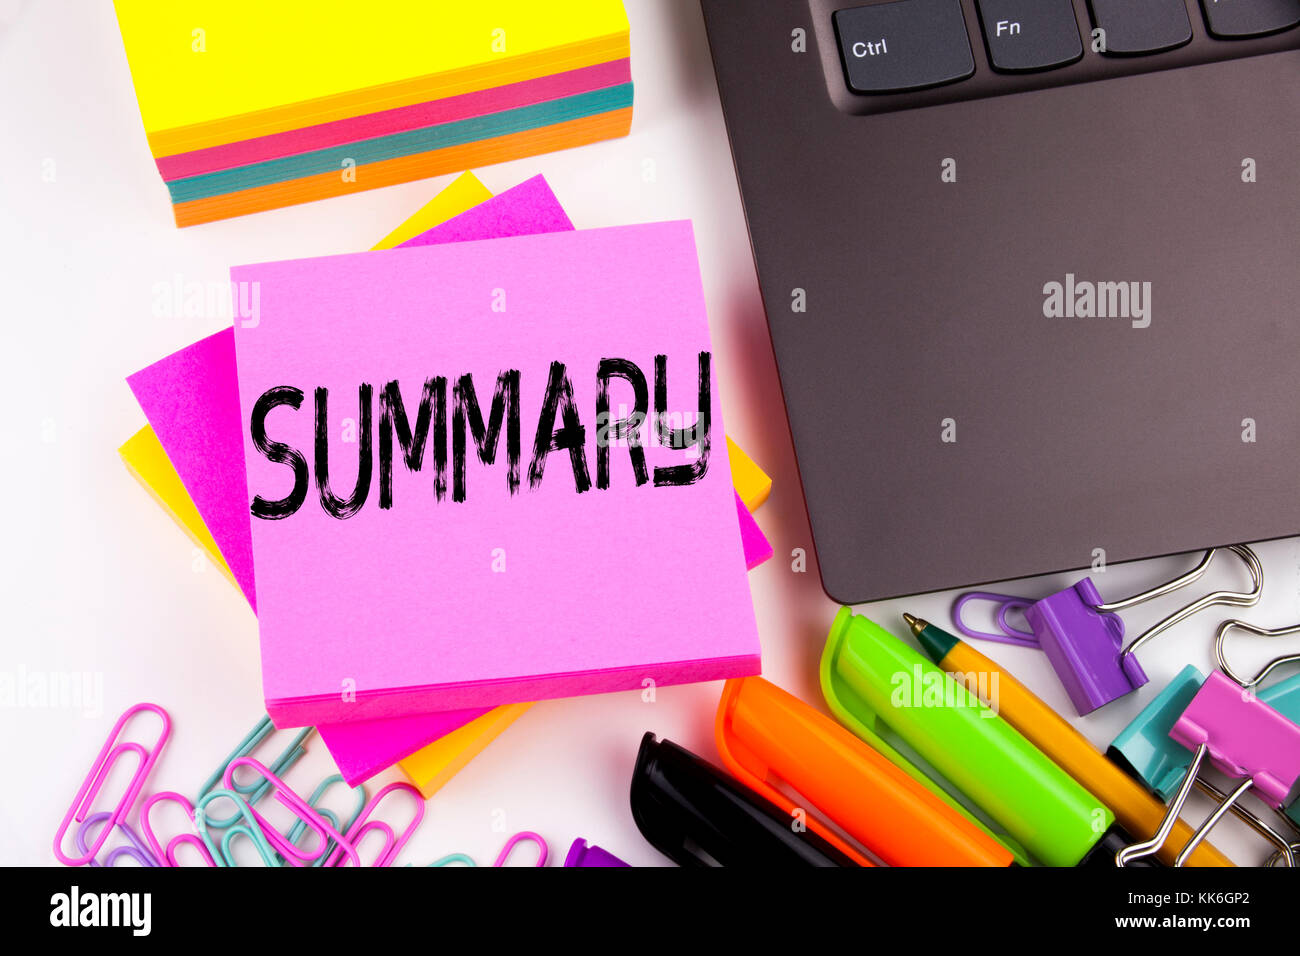 Writing text showing Summary made in the office with surroundings such as laptop, marker, pen. Business concept - Stock Image